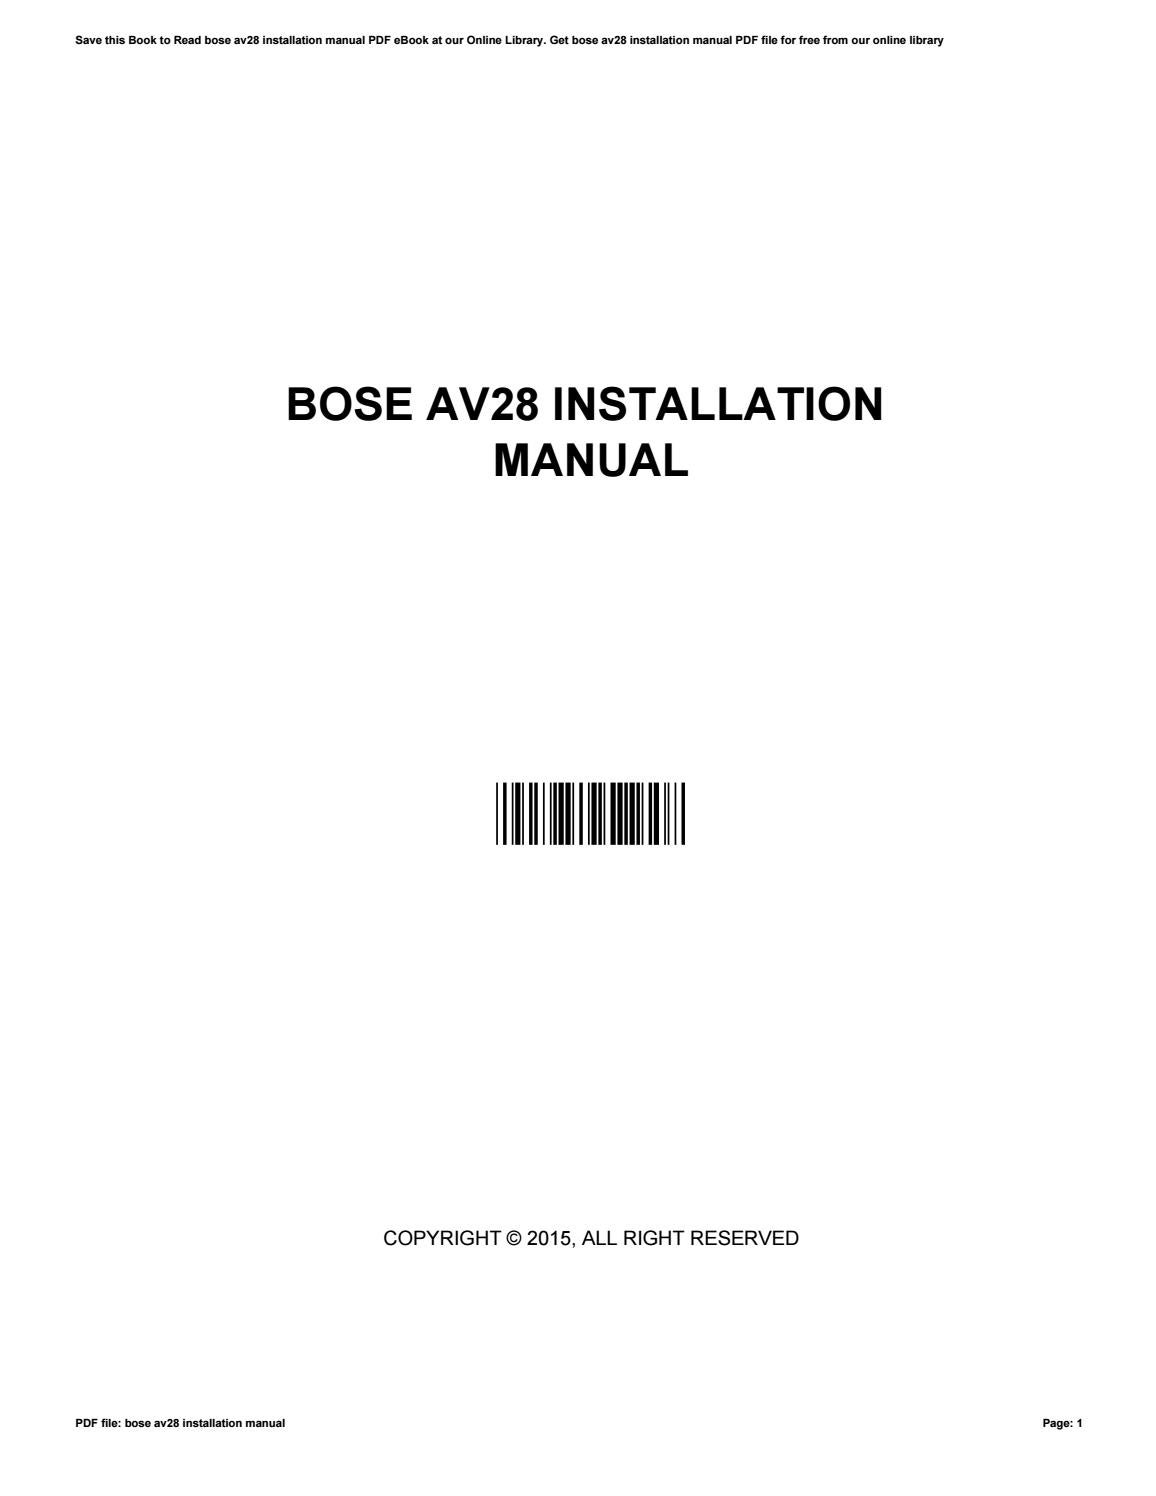 bose lifestyle 28 user manual ebook